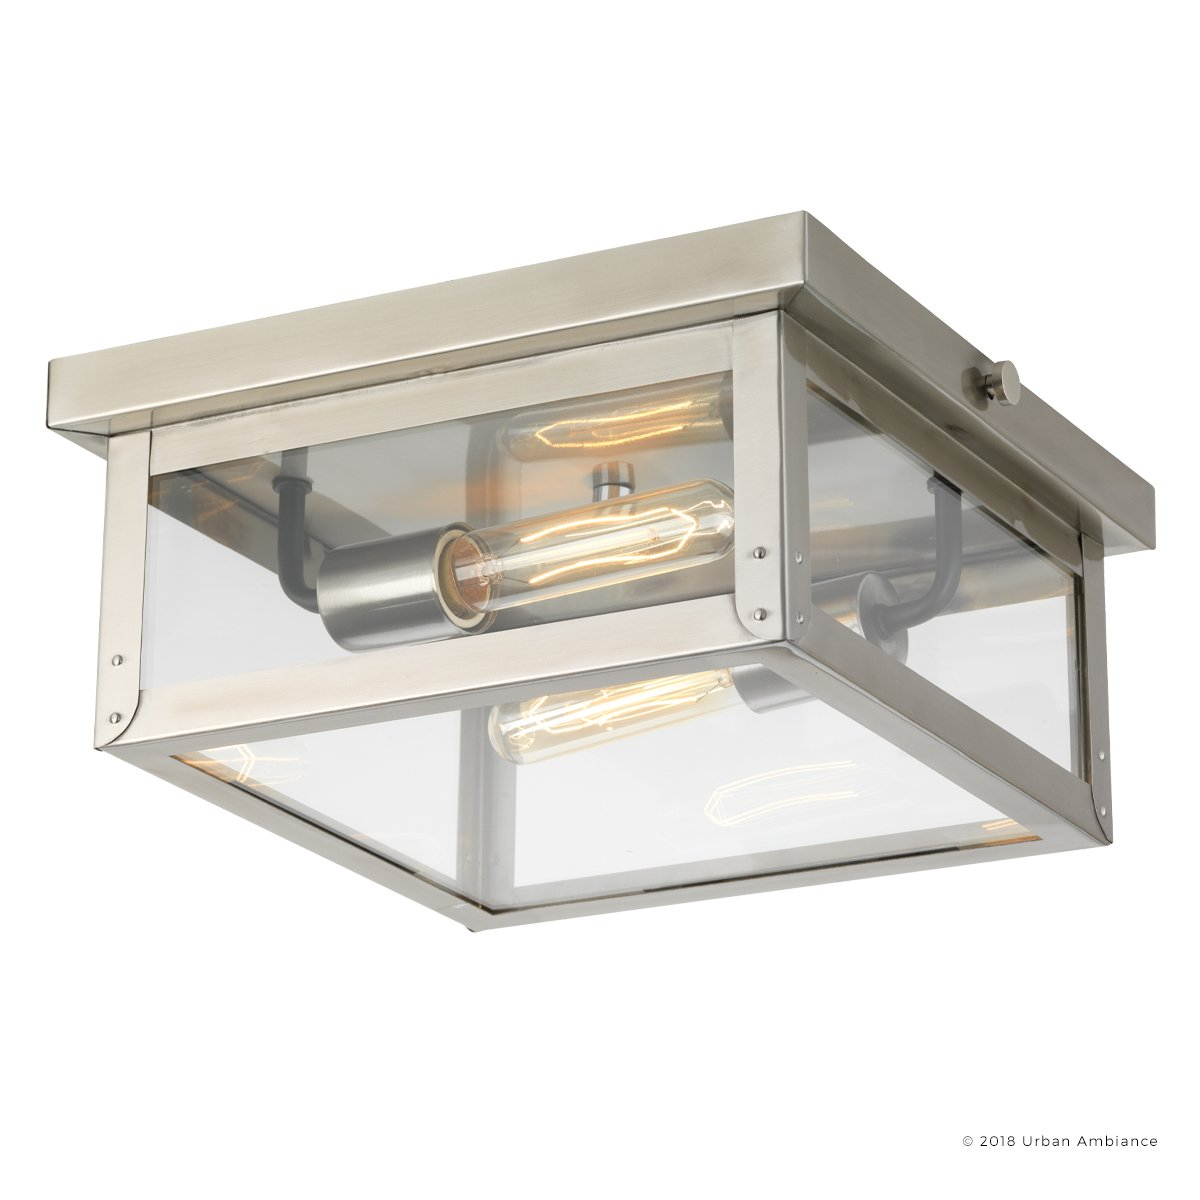 Luxury Modern Farmhouse Outdoor Ceiling, Small Size: 5.5''H x 12.375''W, with Nautical Style Elements, Stainless Steel Finish and Clear Flat Shade, UHP1133 from The Darwin Collection by Urban Ambiance by Urban Ambiance